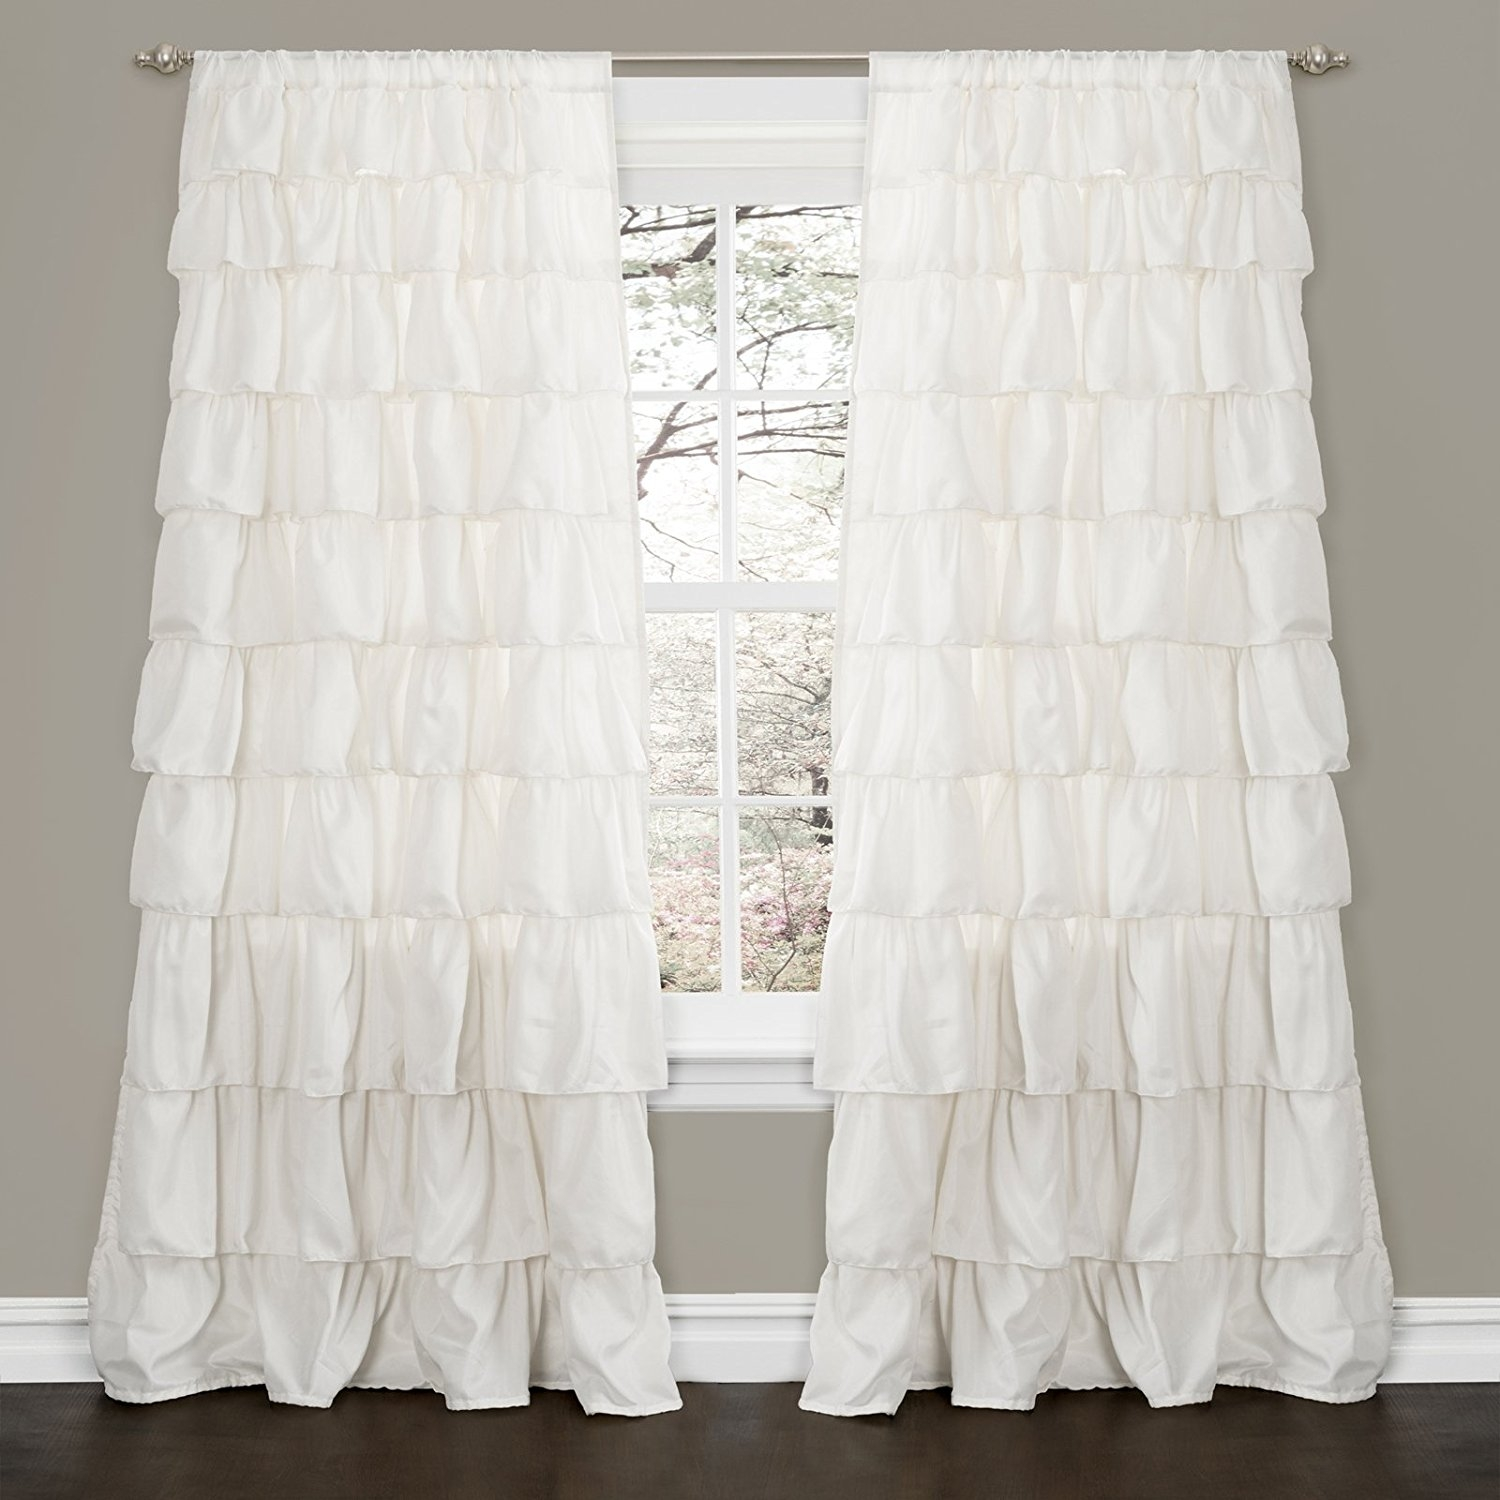 Amazon Lush Decor Ruffle Window Curtain Panel 84 50 Inch Regarding White Ruffle Curtains (View 12 of 25)